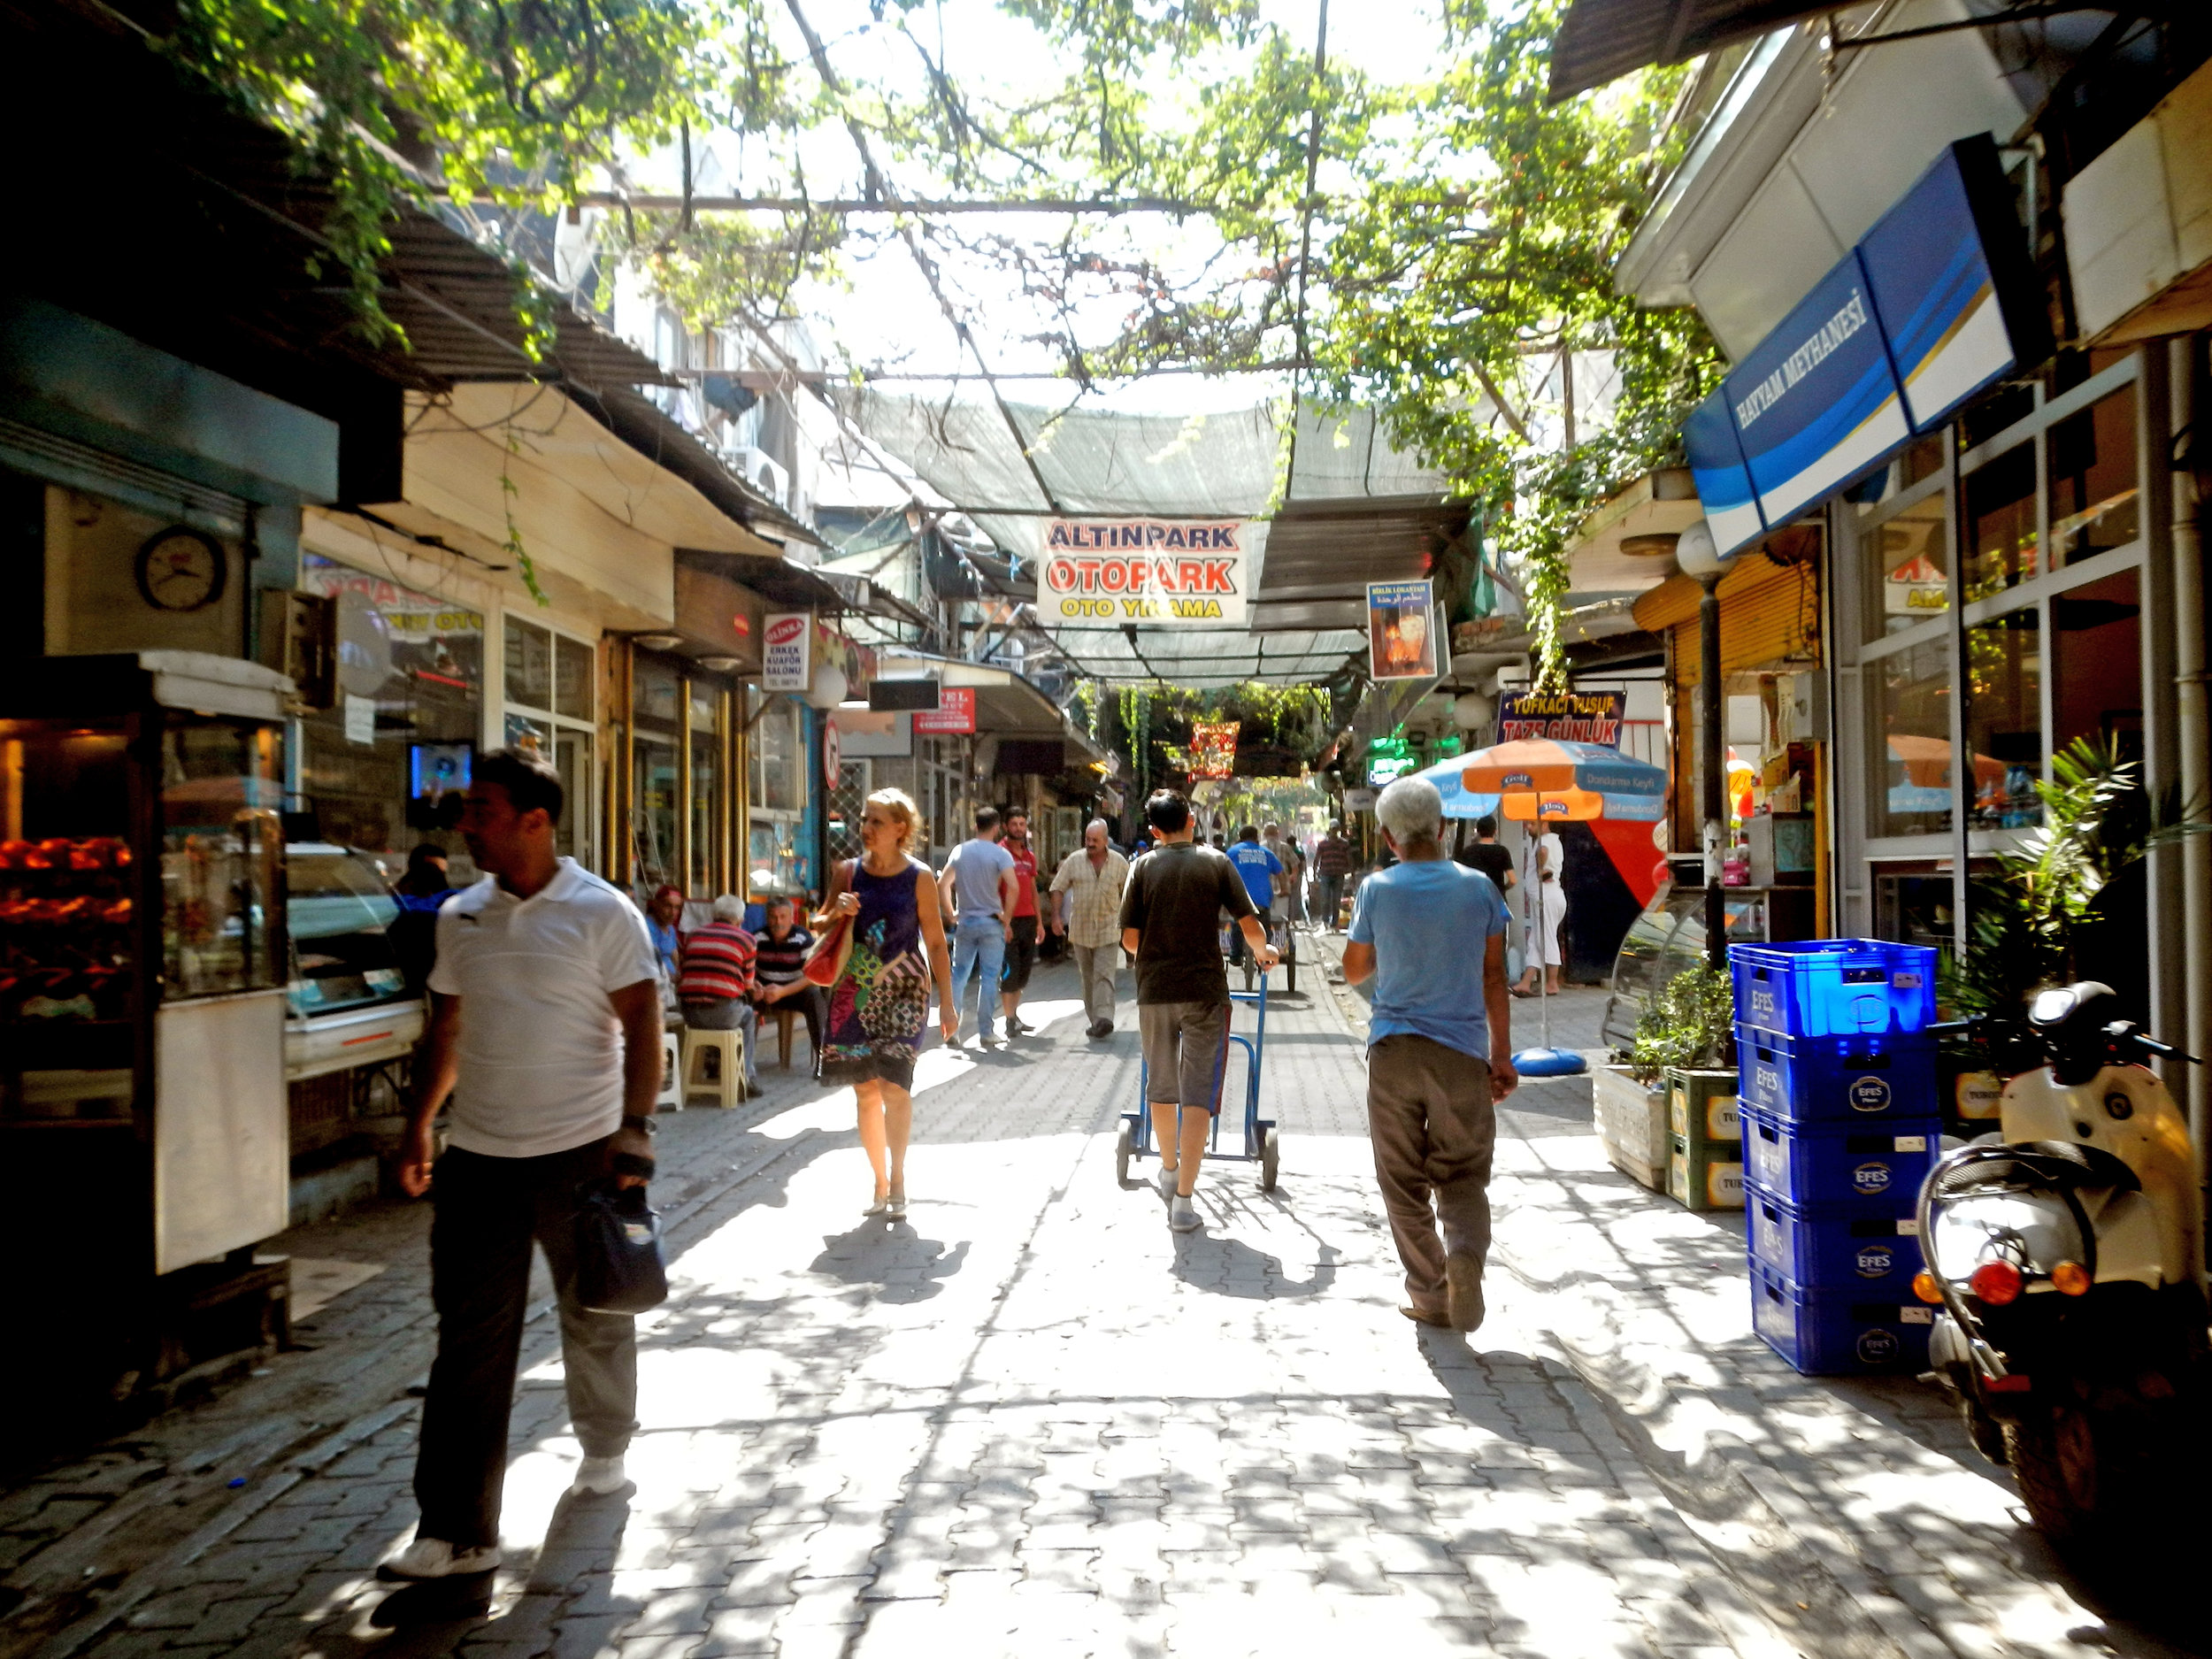 A shopping area in Basmane where one can find Syrian barber shops, grocery stores, vegetable and fruit vendors, electronics stores, cafes, restaurants, money transfer vendors, and smugglers.